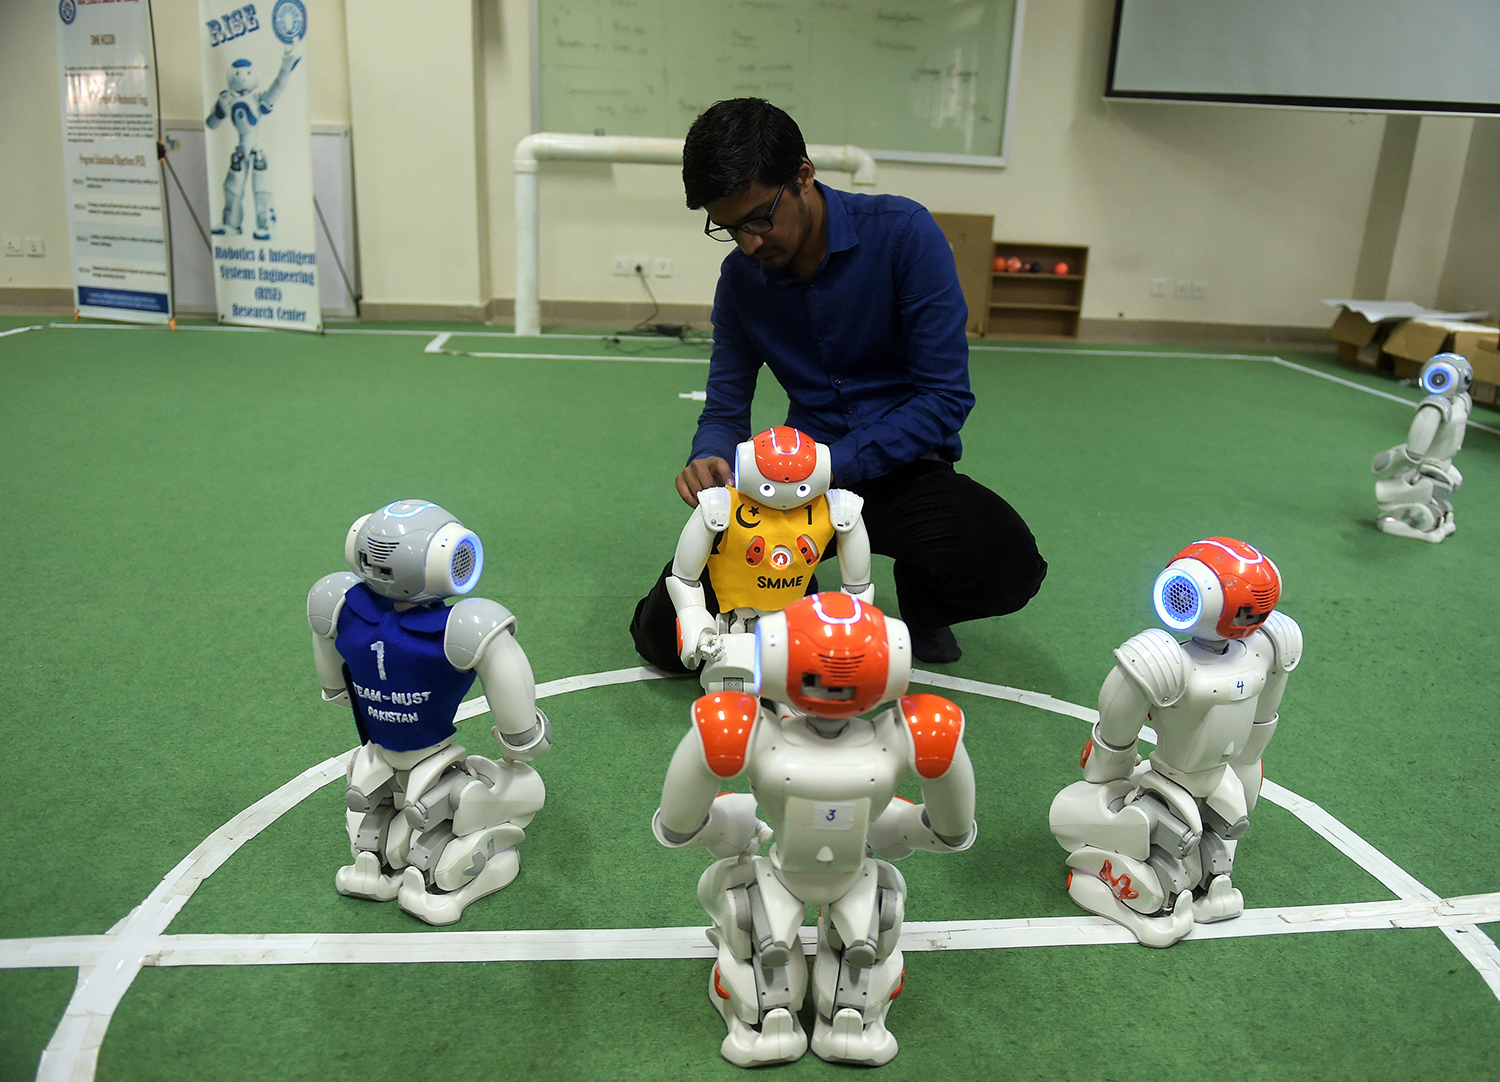 A student and team member of Robotics and Intelligence Systems Engineering (RISE) places robot football players on the pitch. — AFP